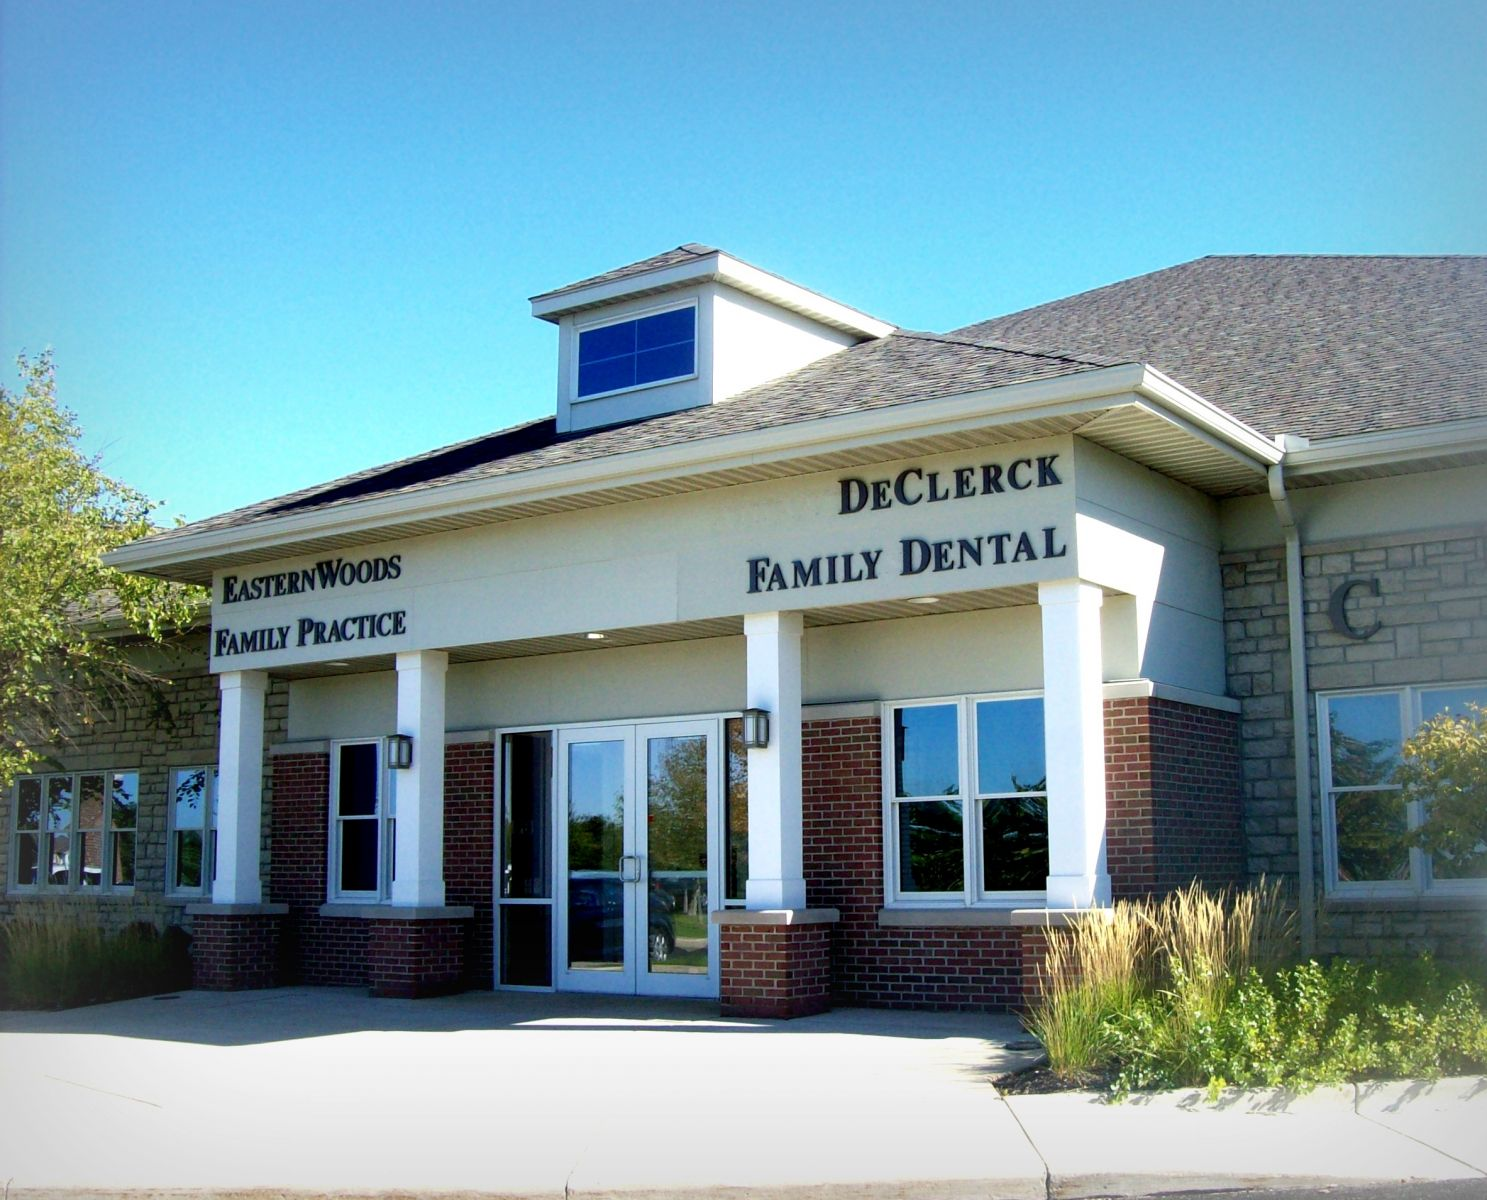 DeClerck Family Dental office